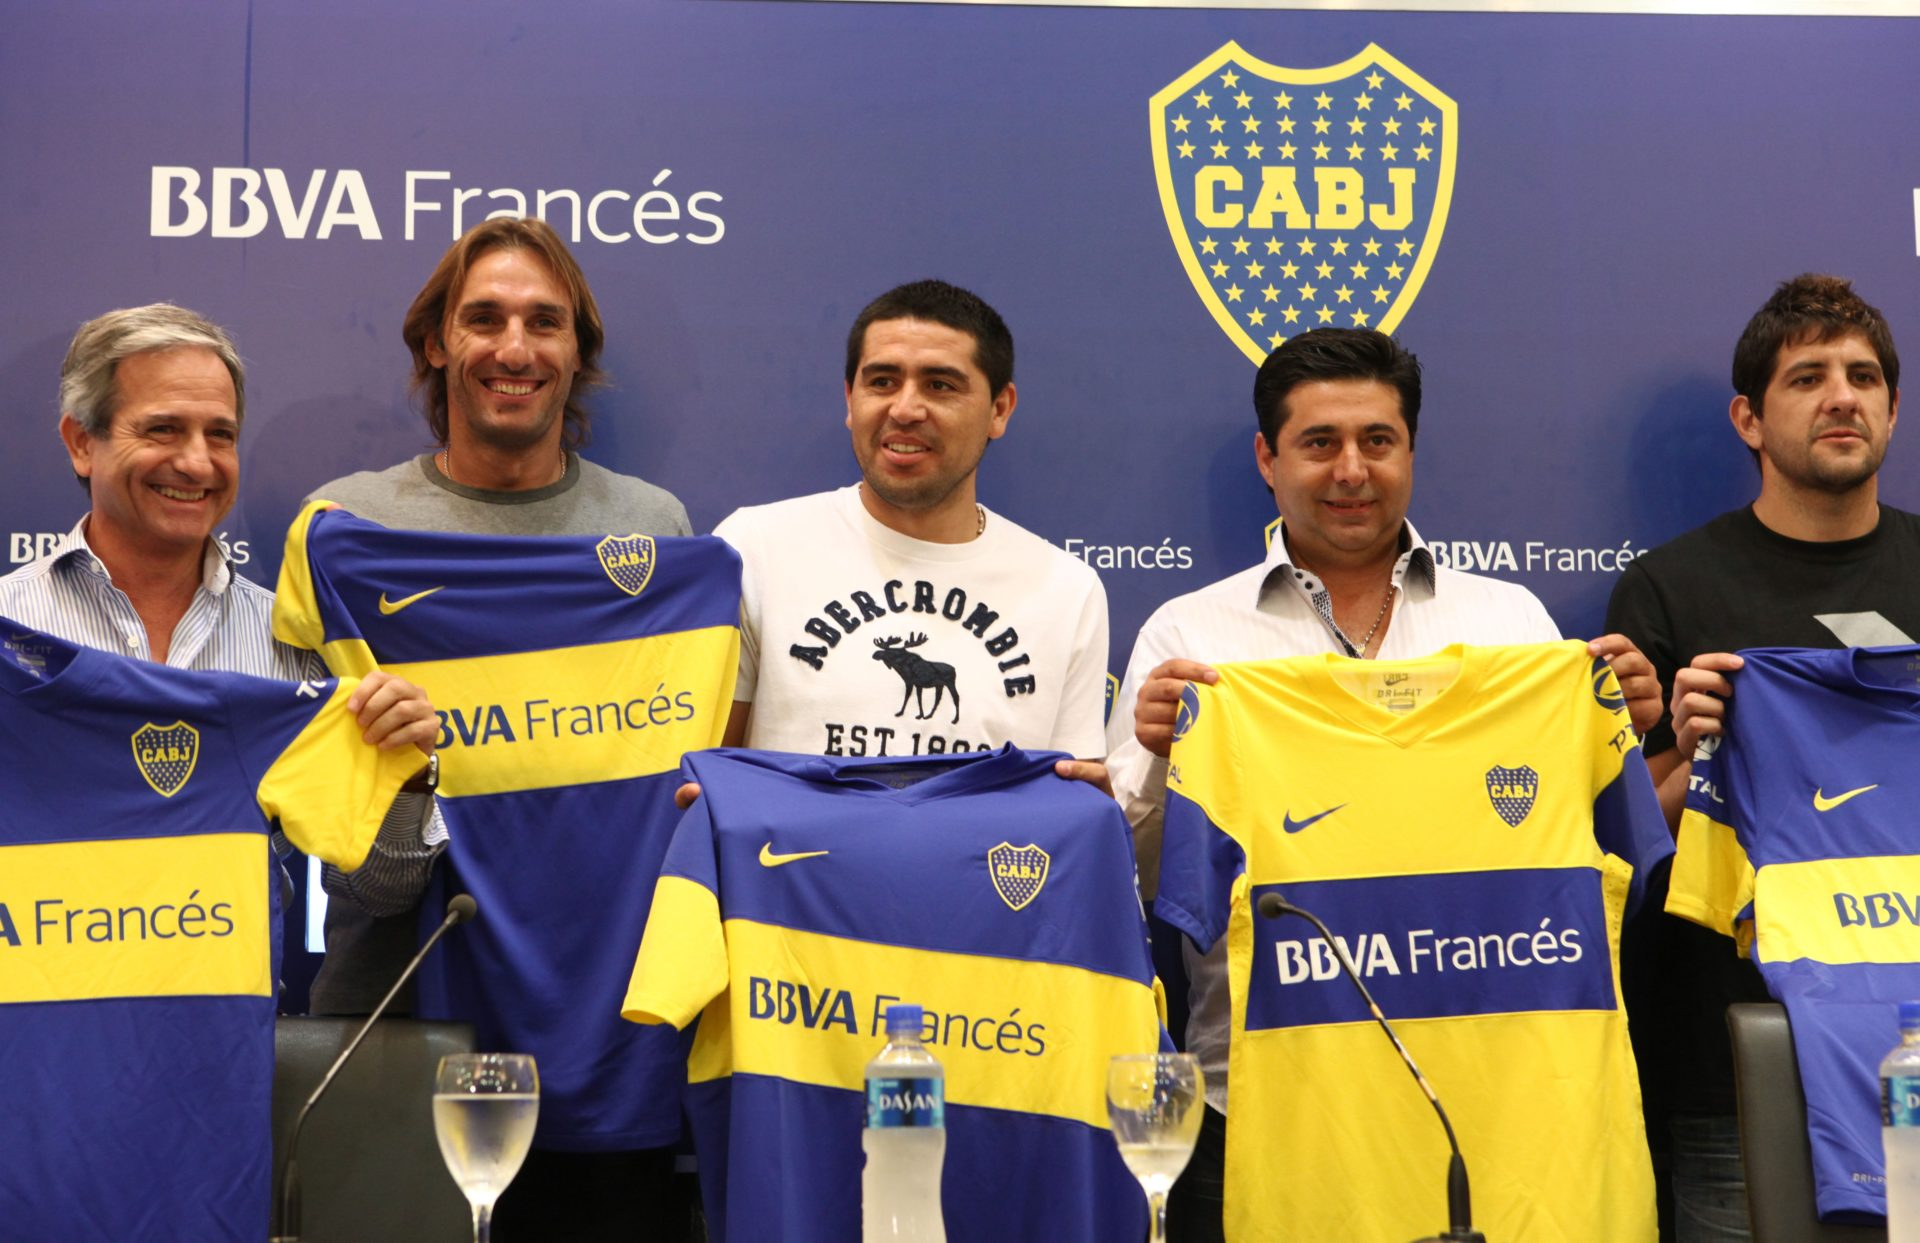 BBVA Francés, New Strategic Sponsor Of Boca Juniors And